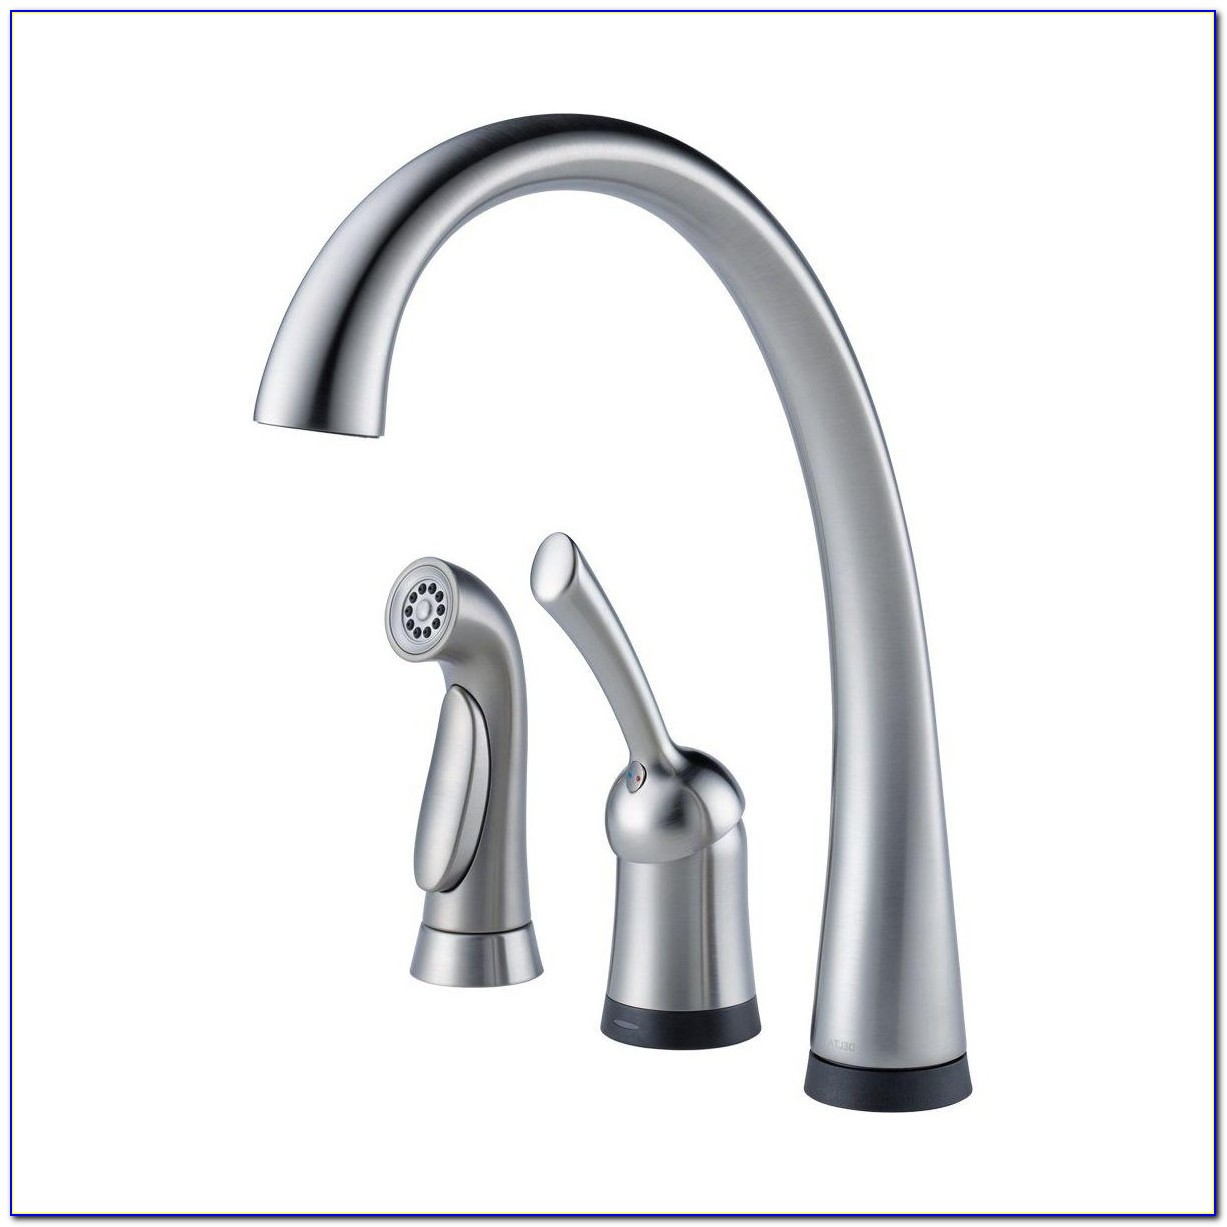 Delta Faucet With Sprayer